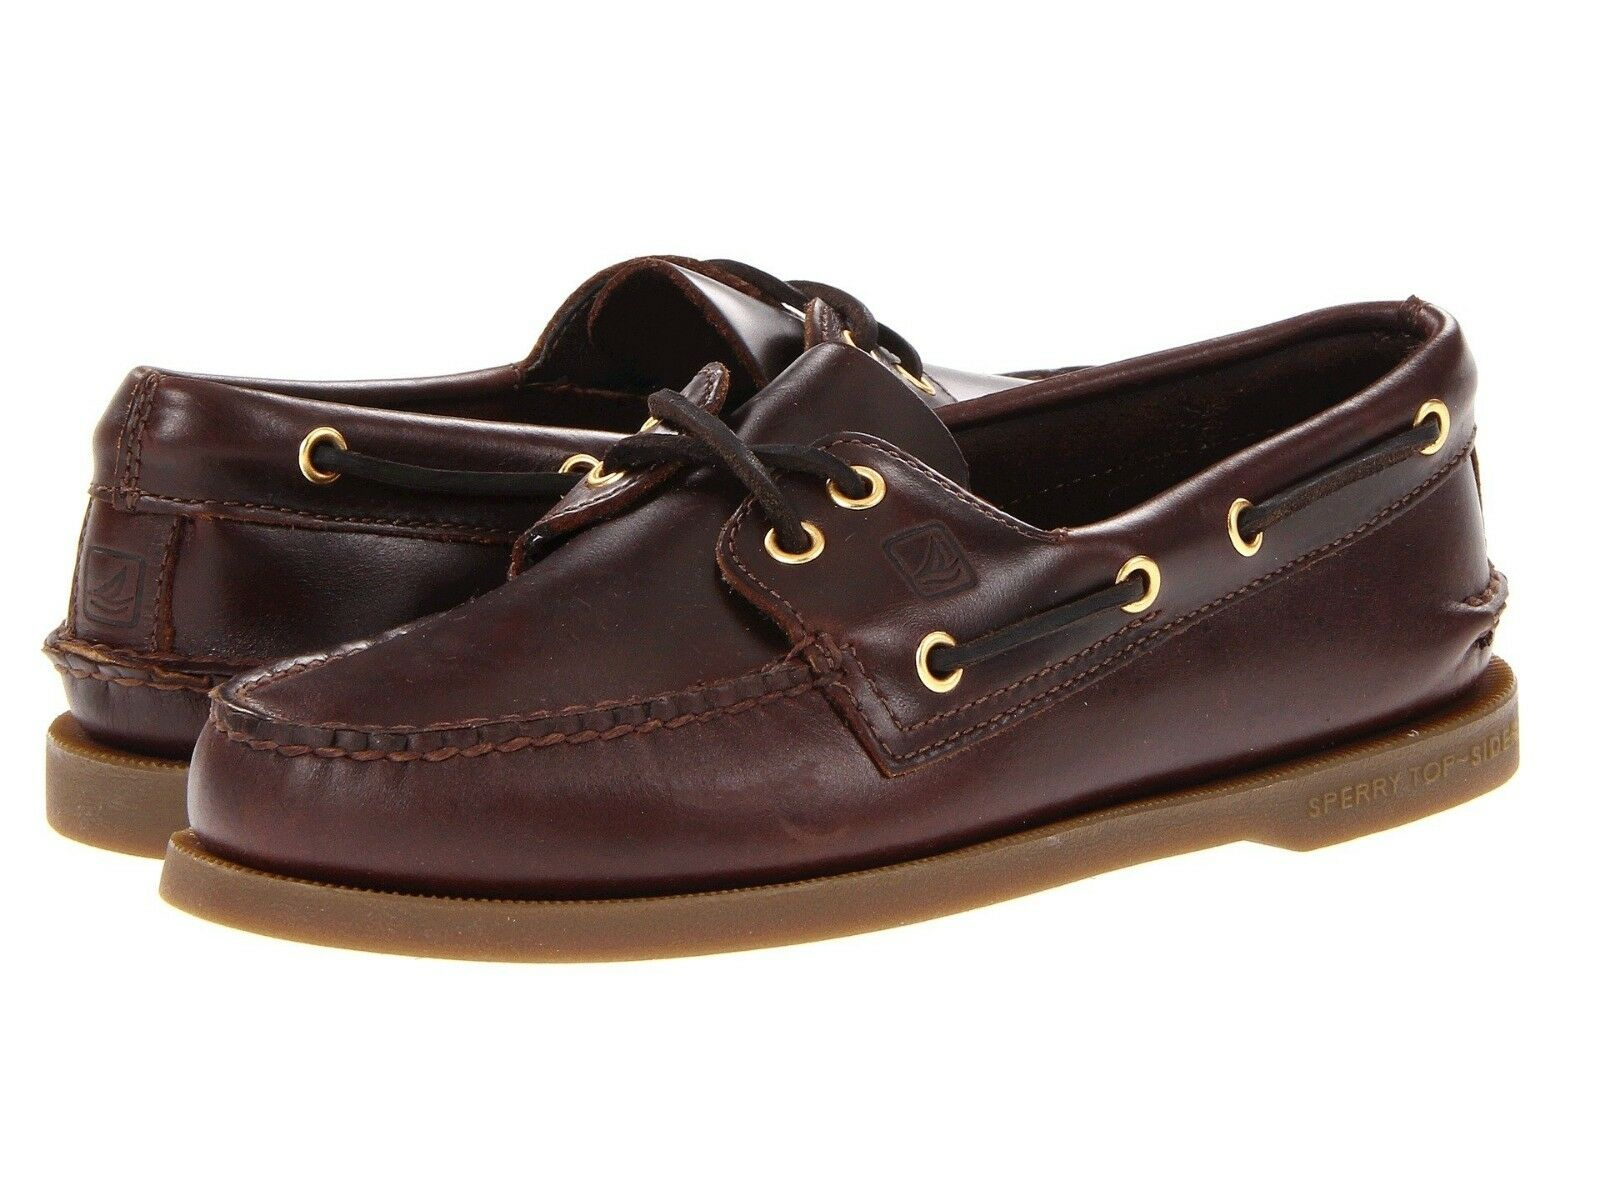 NEW Mens Sperry Top-Sider Amaretto Brown Leather Authentic Original Boat shoes